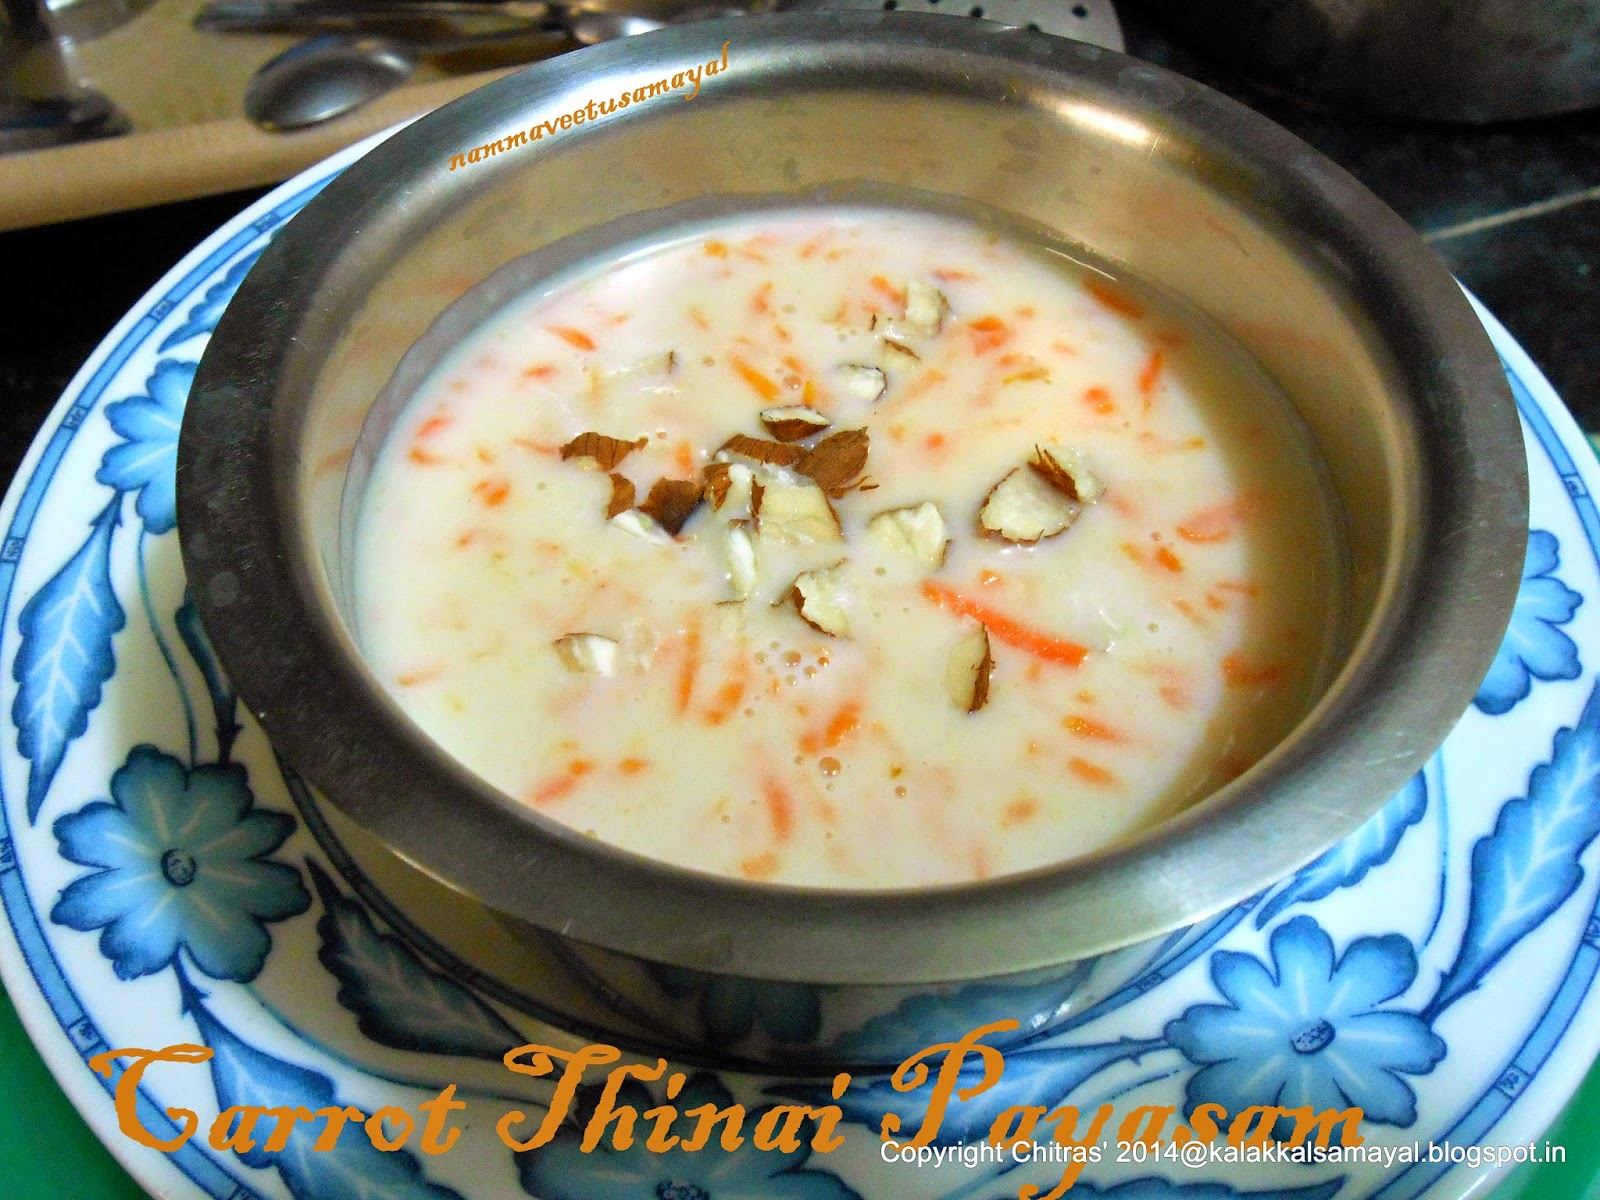 Carrot Thinai Payasam [ Carrot Foxtail Millet Payasam ]